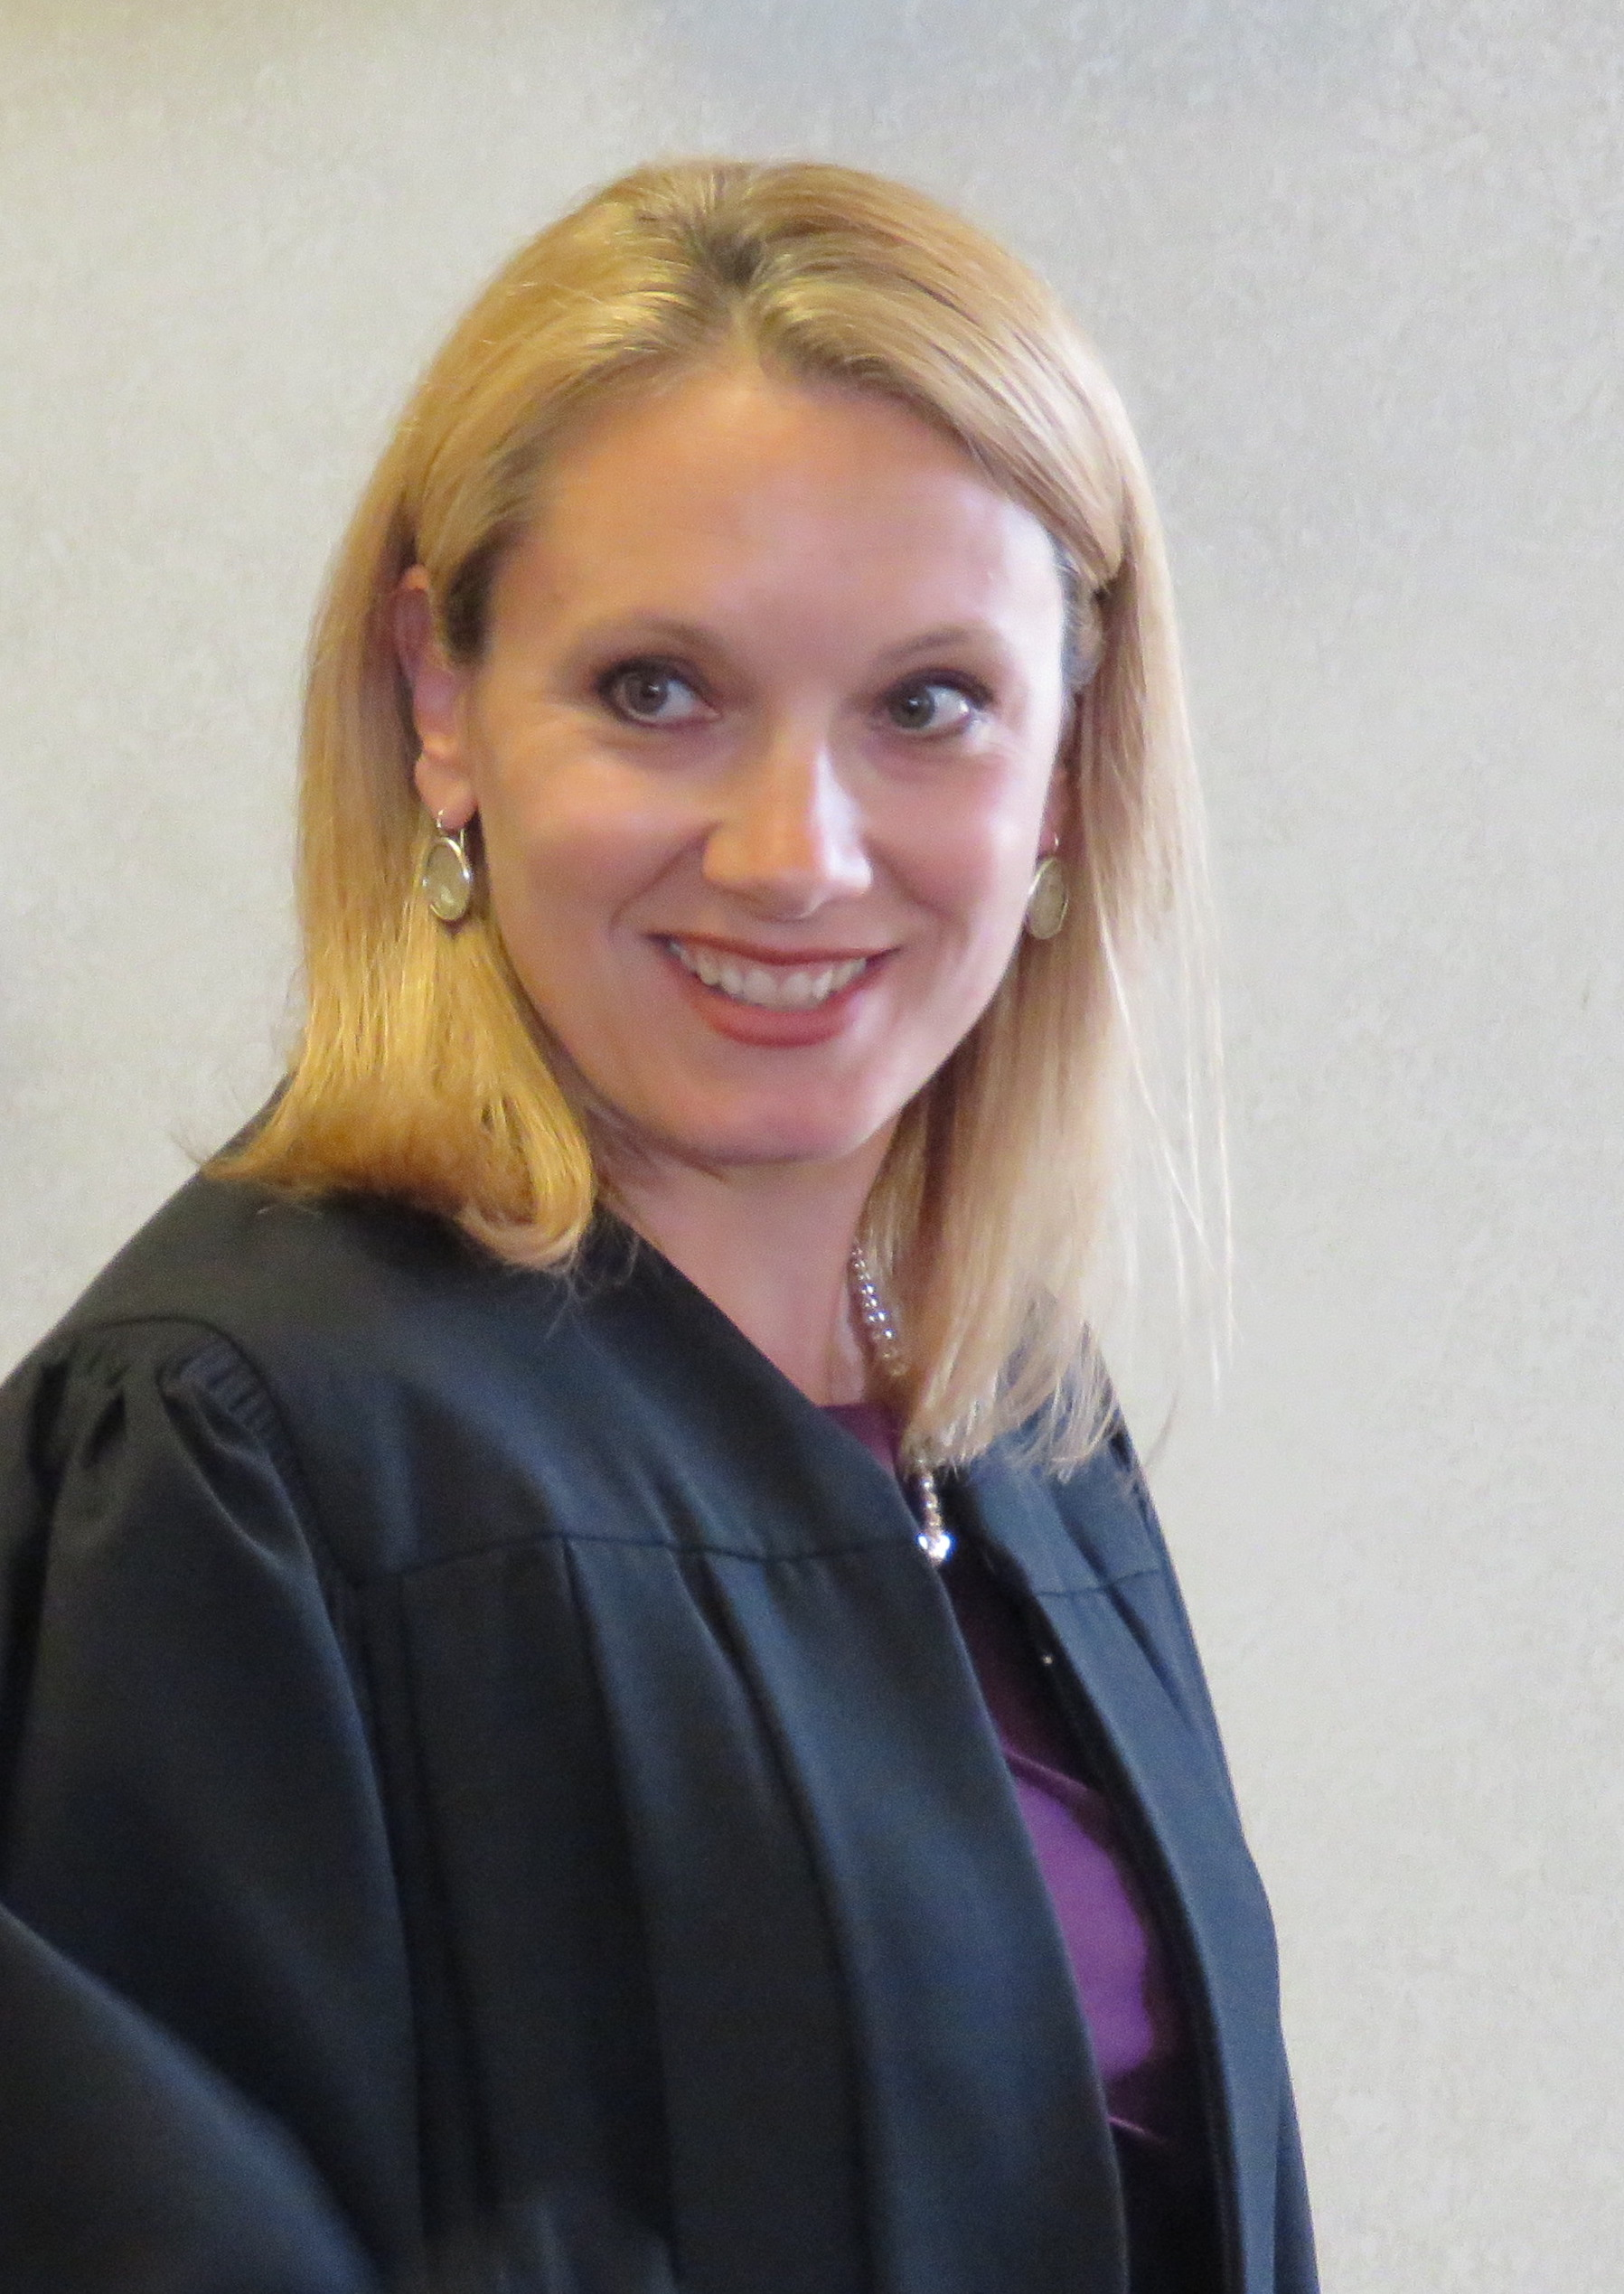 Jerilyn Dietz Sworn In as Manitowoc County Circuit Court Judge